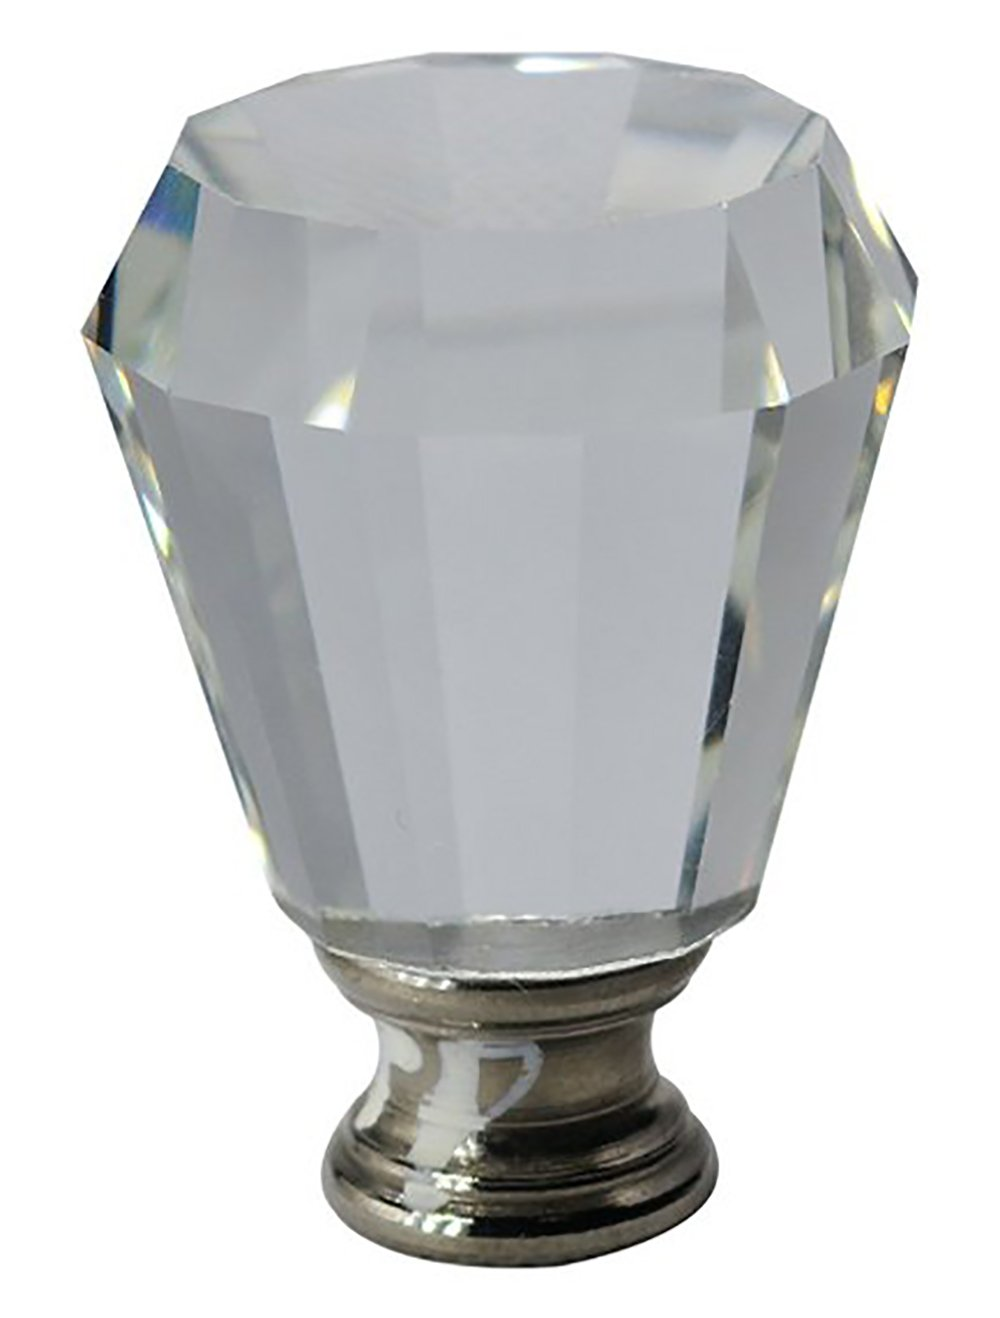 Urbanest Crystal Anne Lamp Finial, Brushed Steel, 2-inch Tall